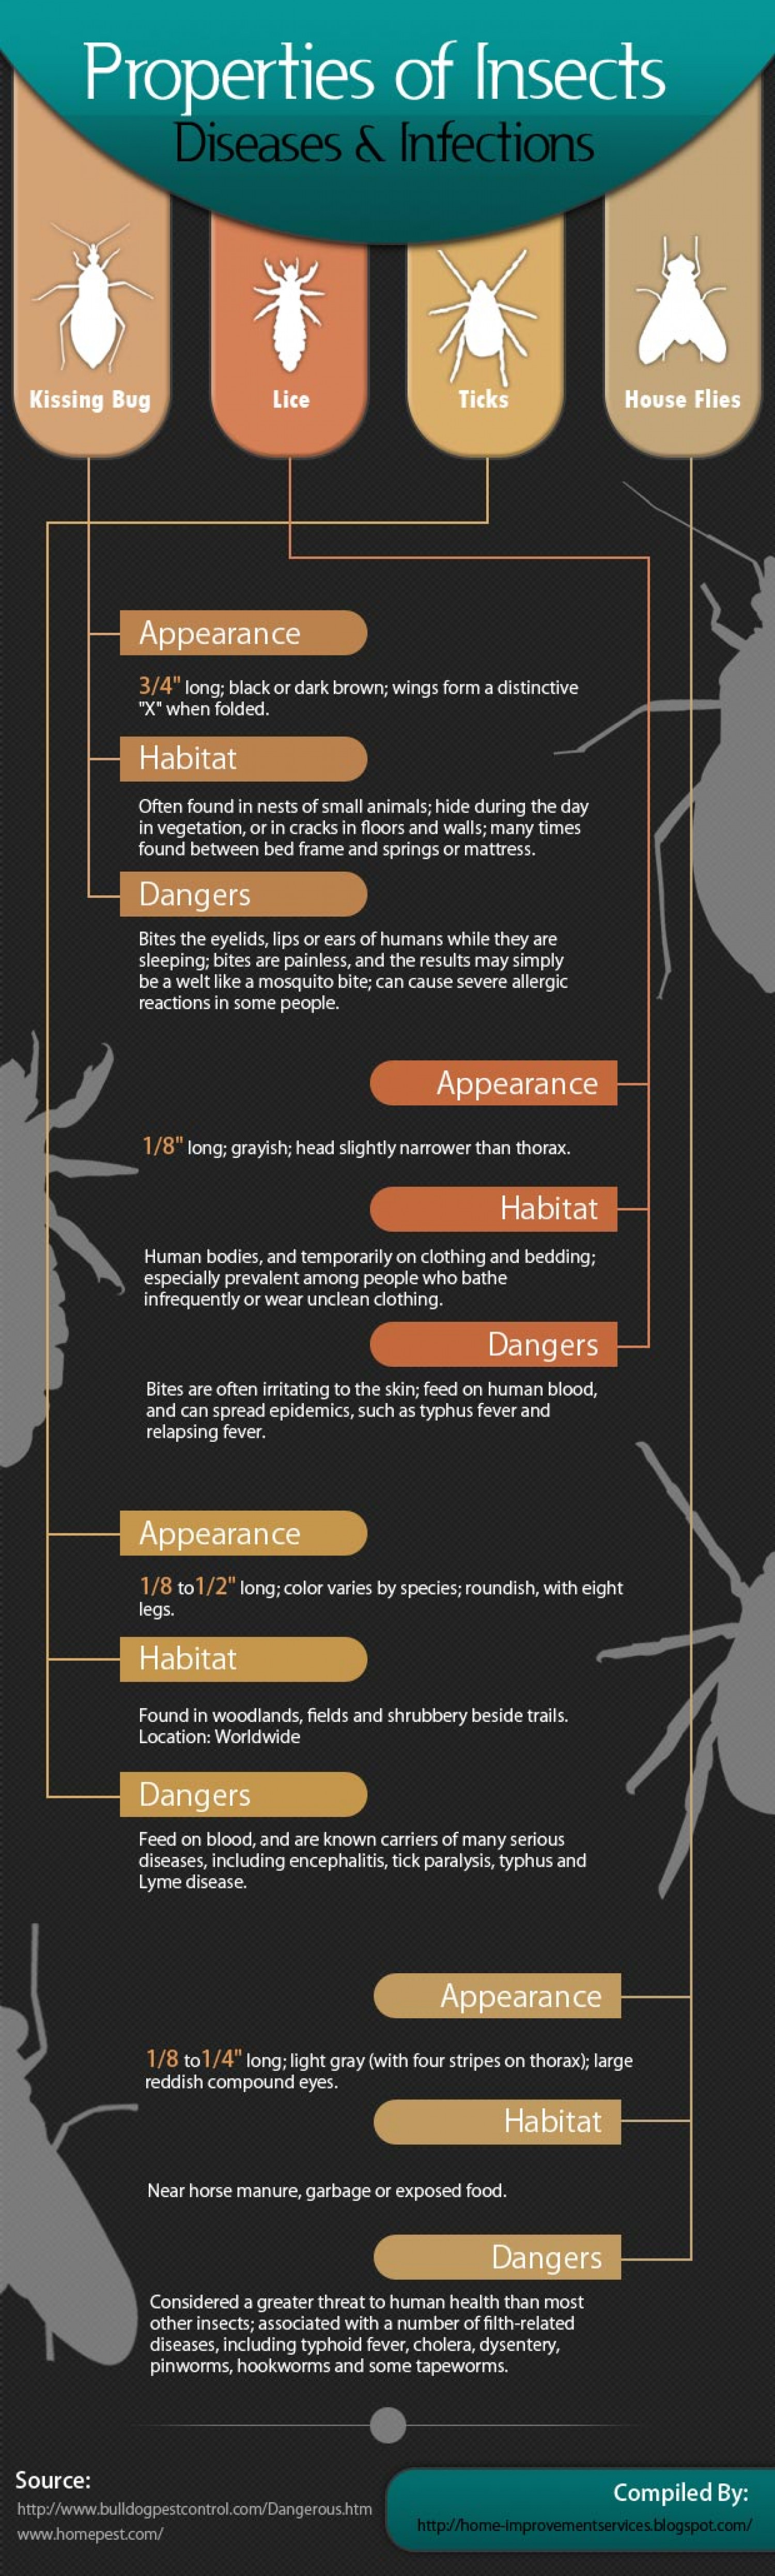 Properties of Insect Diseases and Infections [Infographic]  Infographic